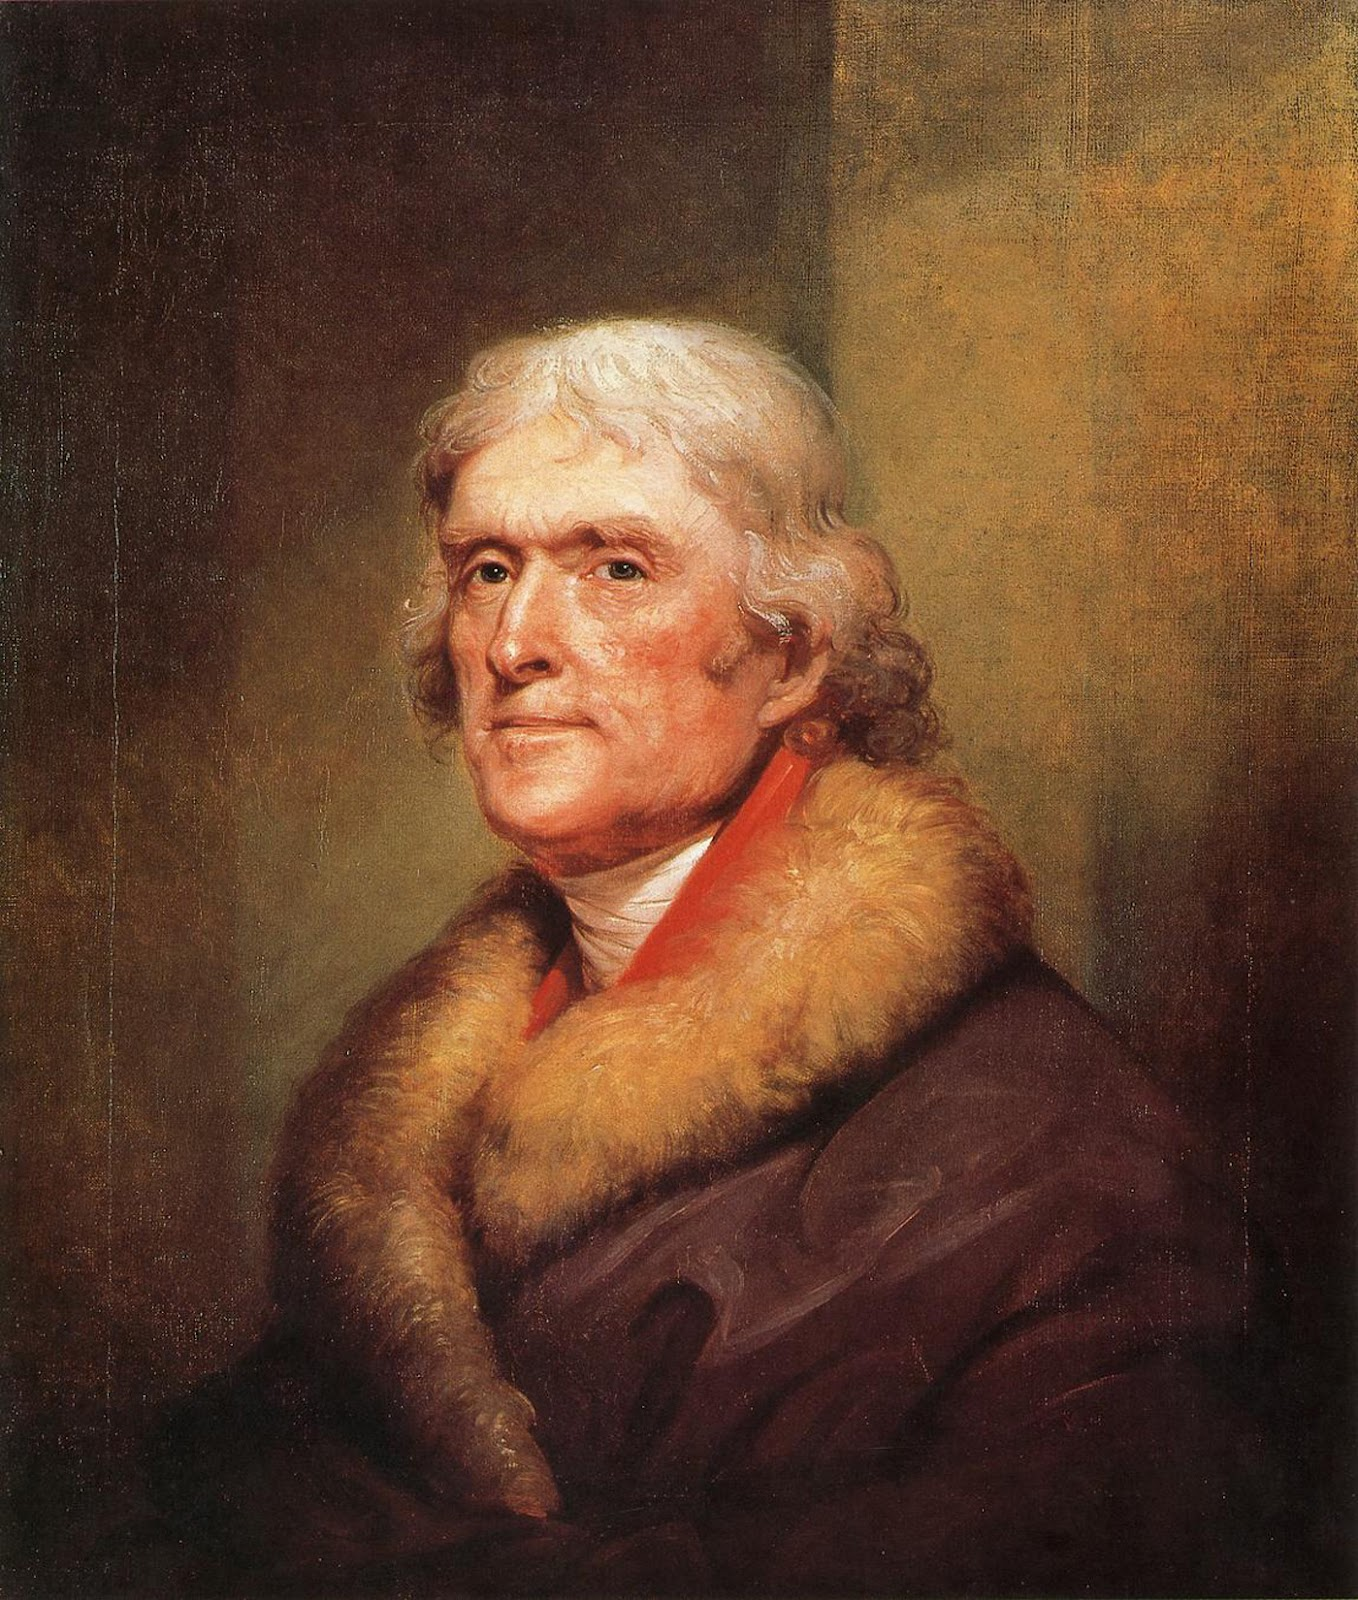 an introduction to the history of jefferson - thomas jefferson is a man who really needs no introduction he was recognized as a luminous writer who was appointed to draft the declaration of independence congress formally approved the declaration of independence on july 4, 1776.